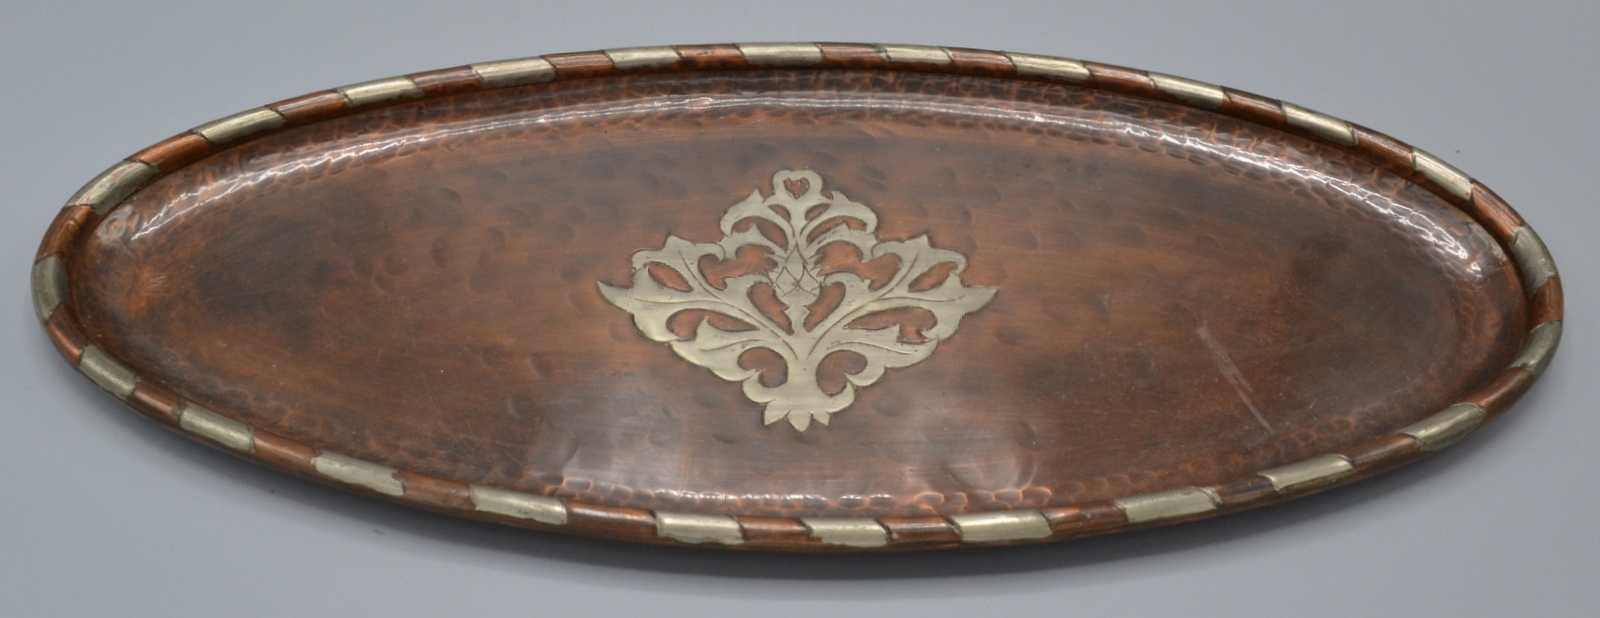 Lot 27 - Hugh Wallis, an Arts and Crafts narrow, oval, planished copper tray,